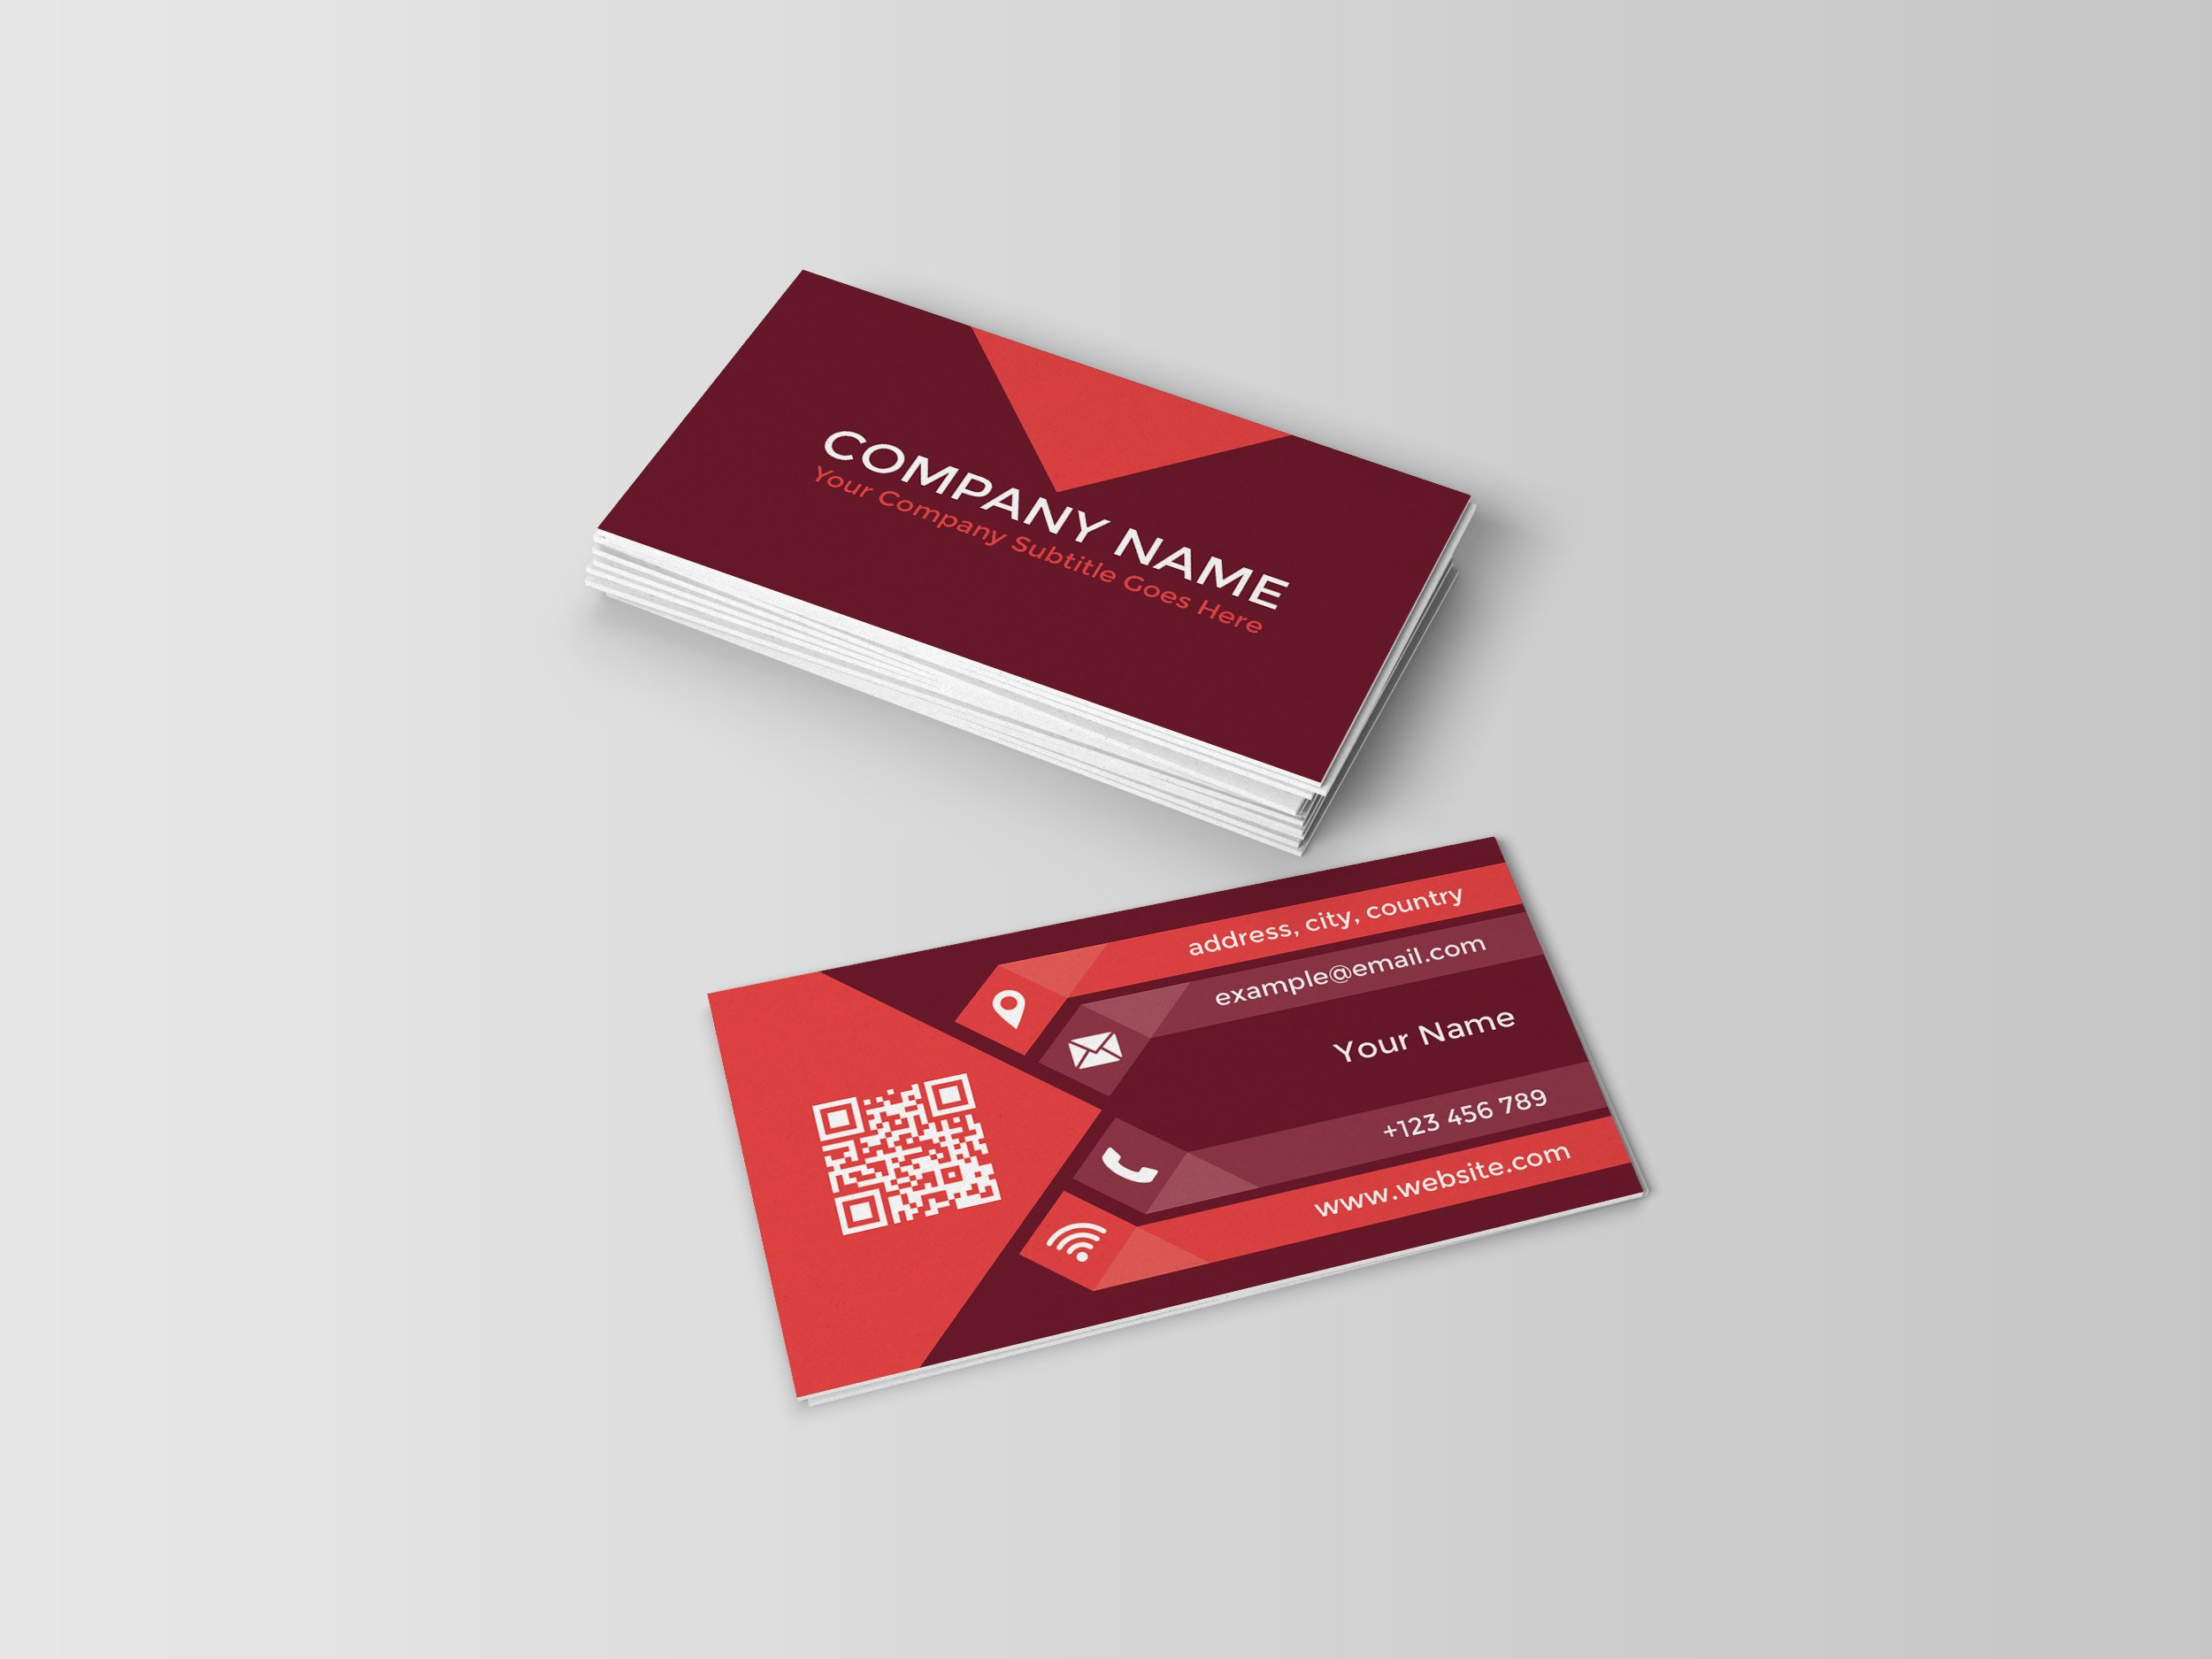 Multipurpose qr code business card business card templates multipurpose qr code business card business card templates creative market reheart